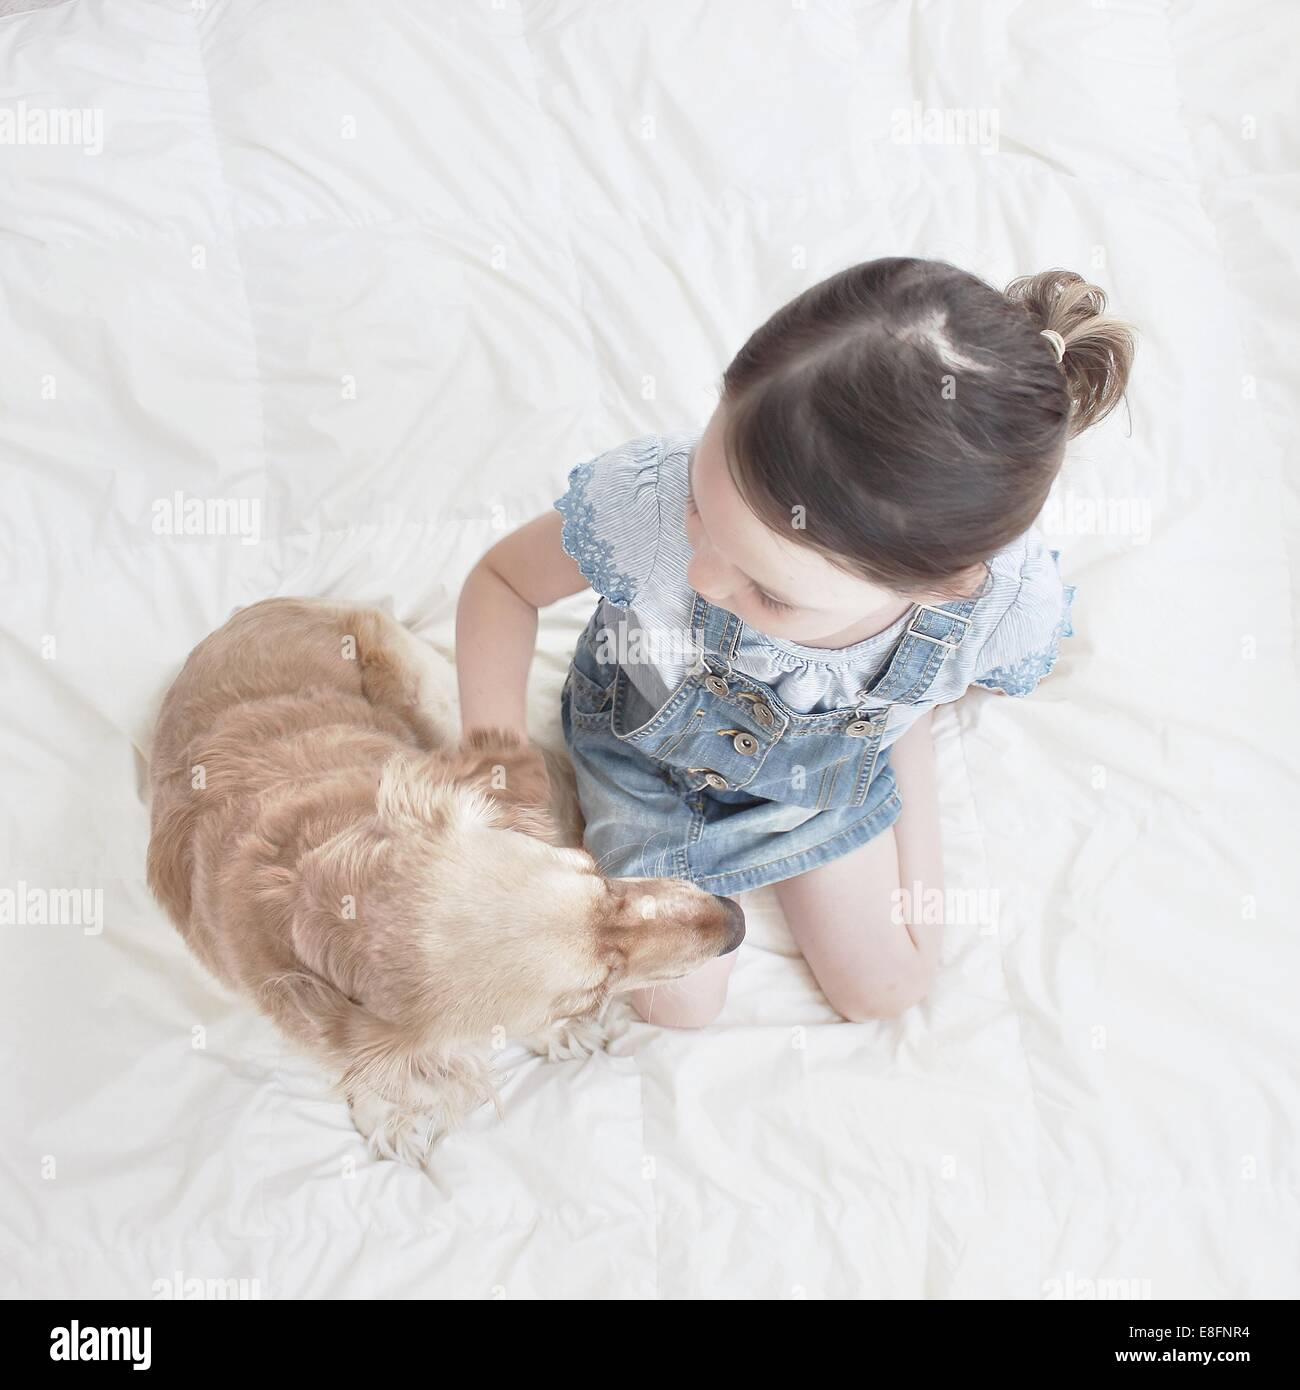 Overhead view of girl sitting on bed with dog - Stock Image